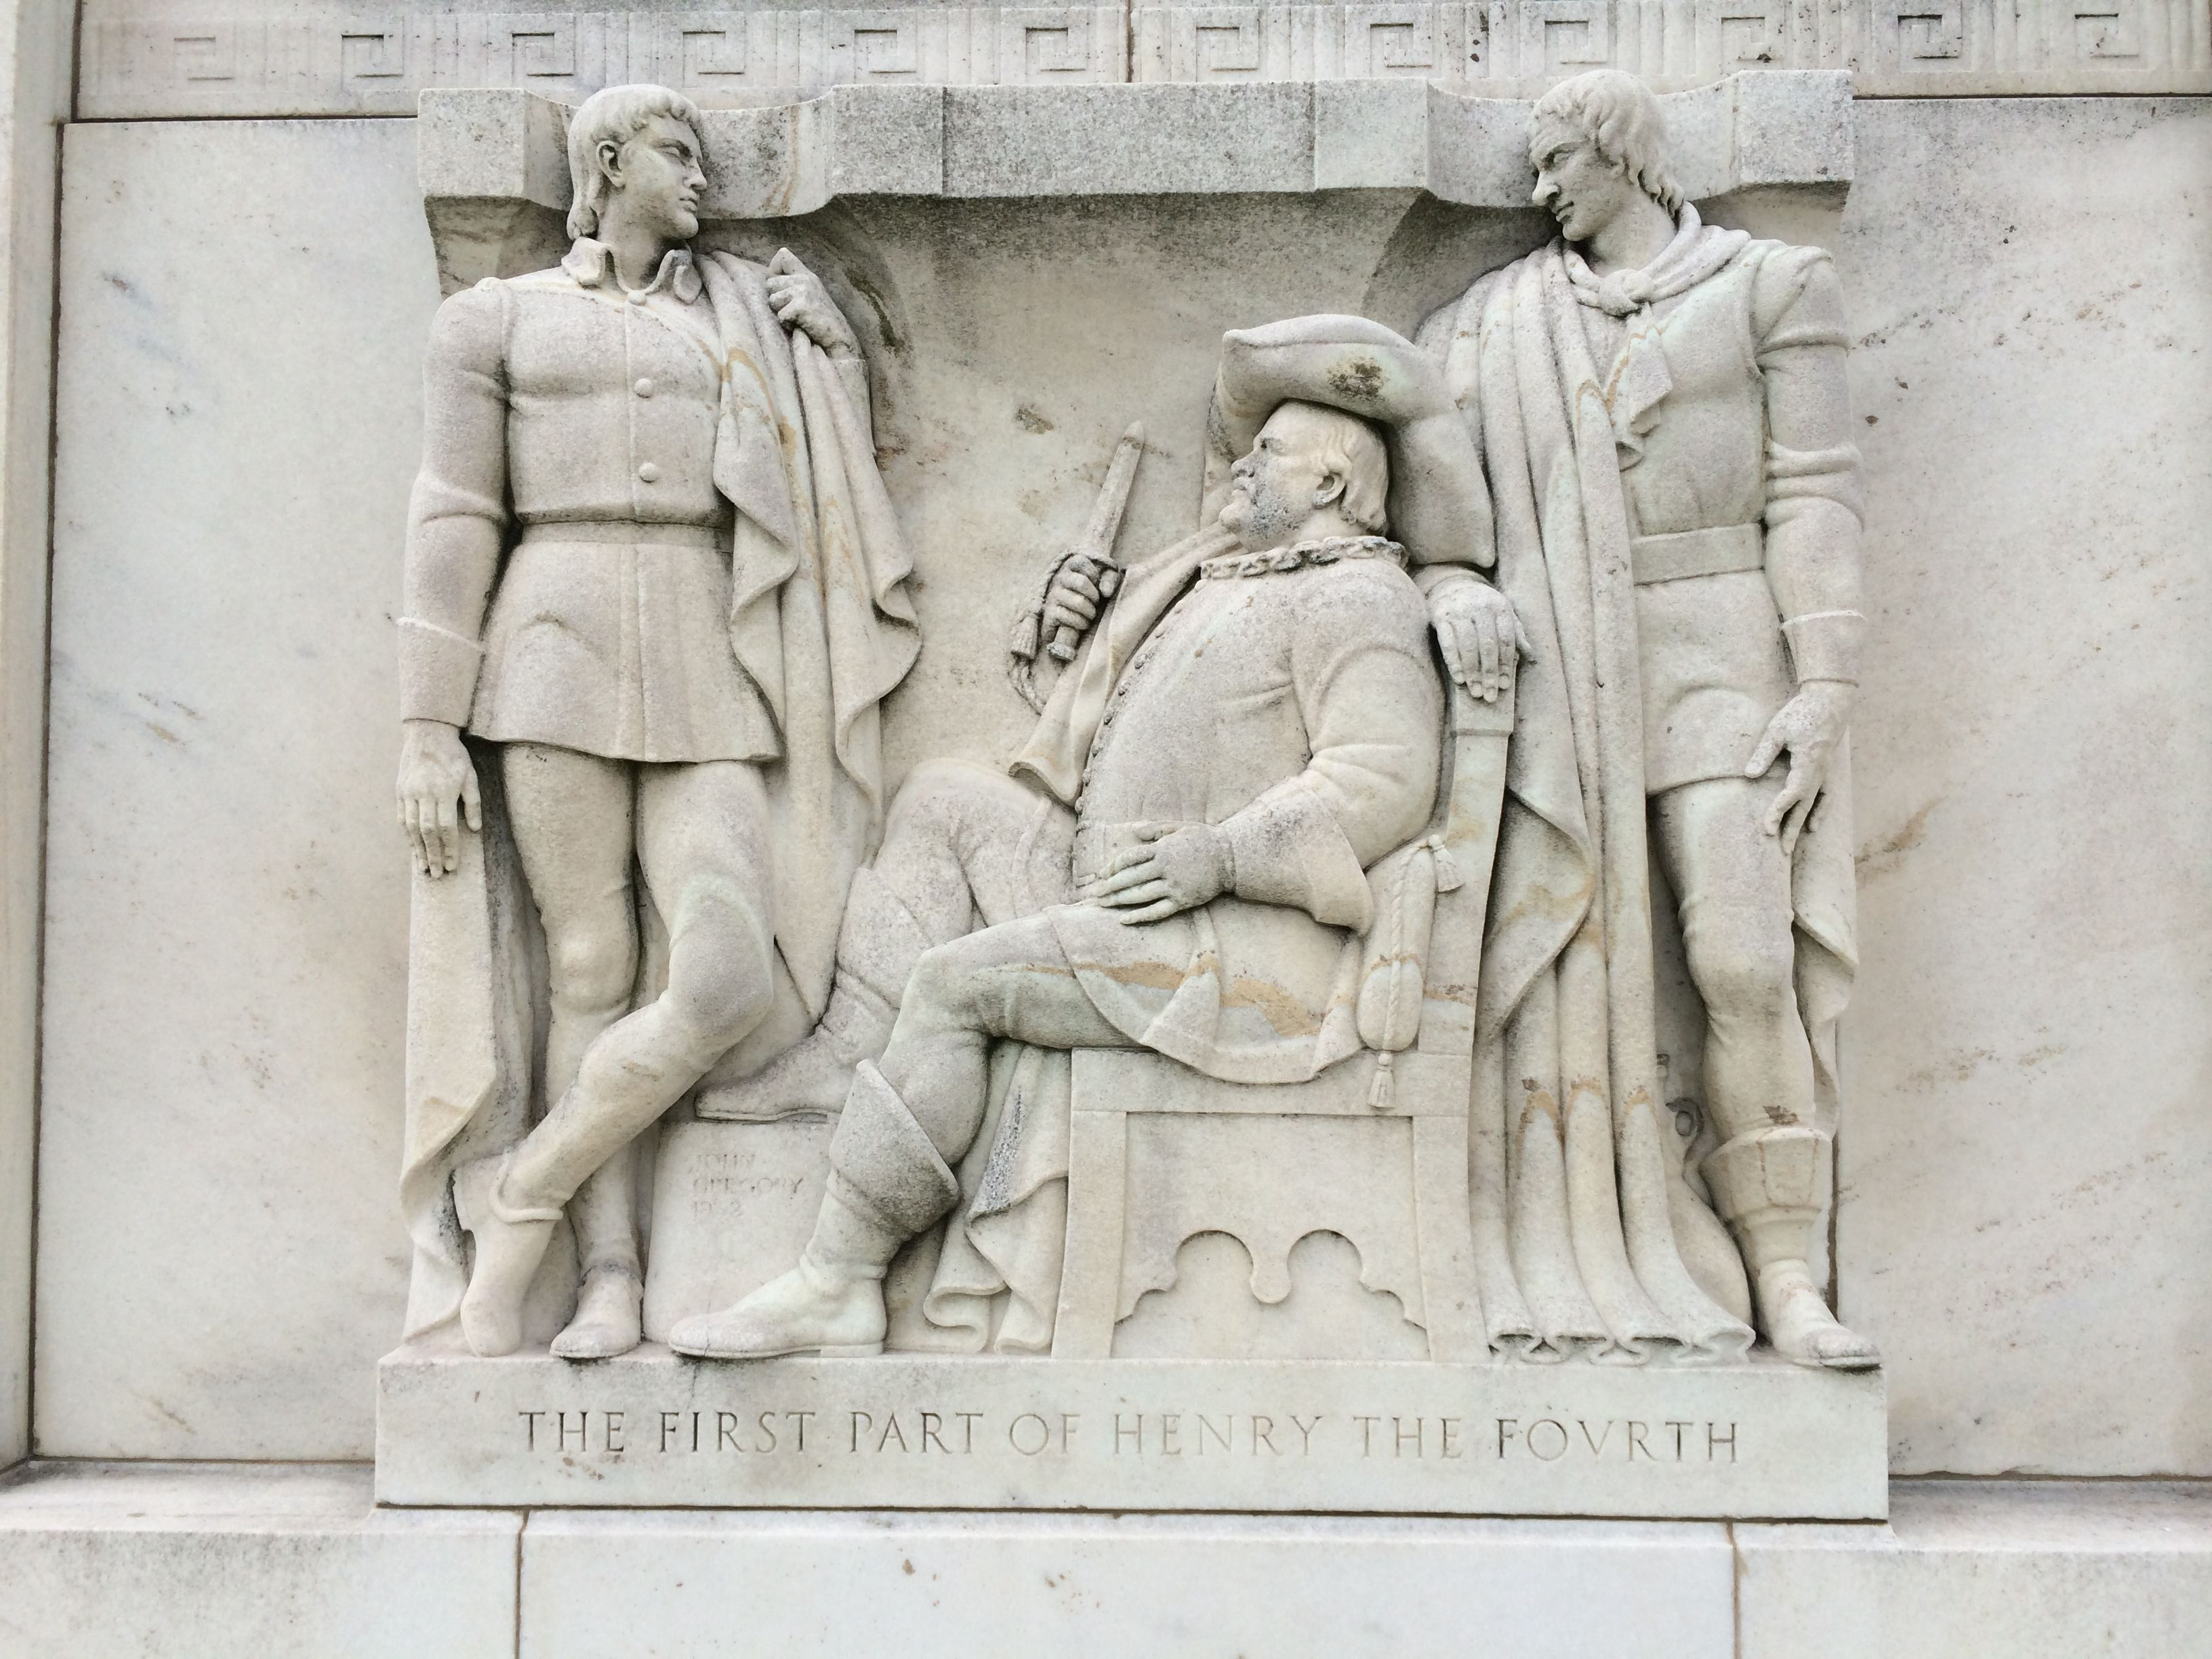 Henry IV, part 1 - frieze on The Folger Shakespeare Library